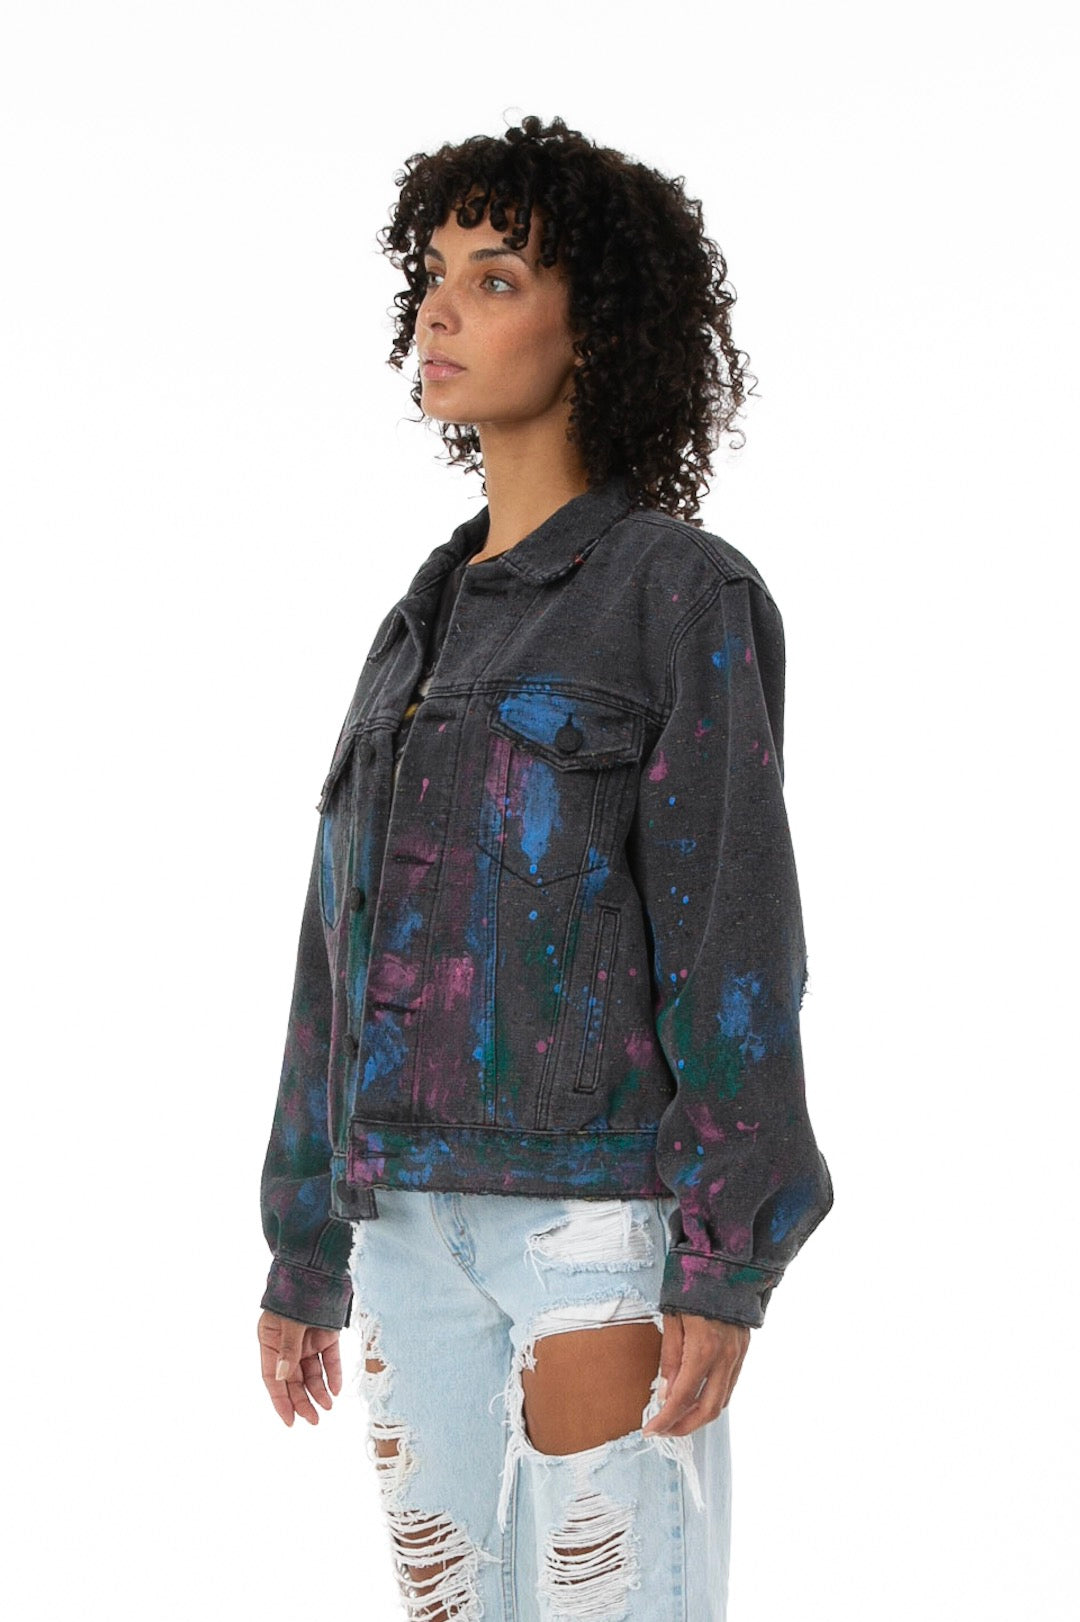 Side of female Model Wearing Artists' Denim Jacket